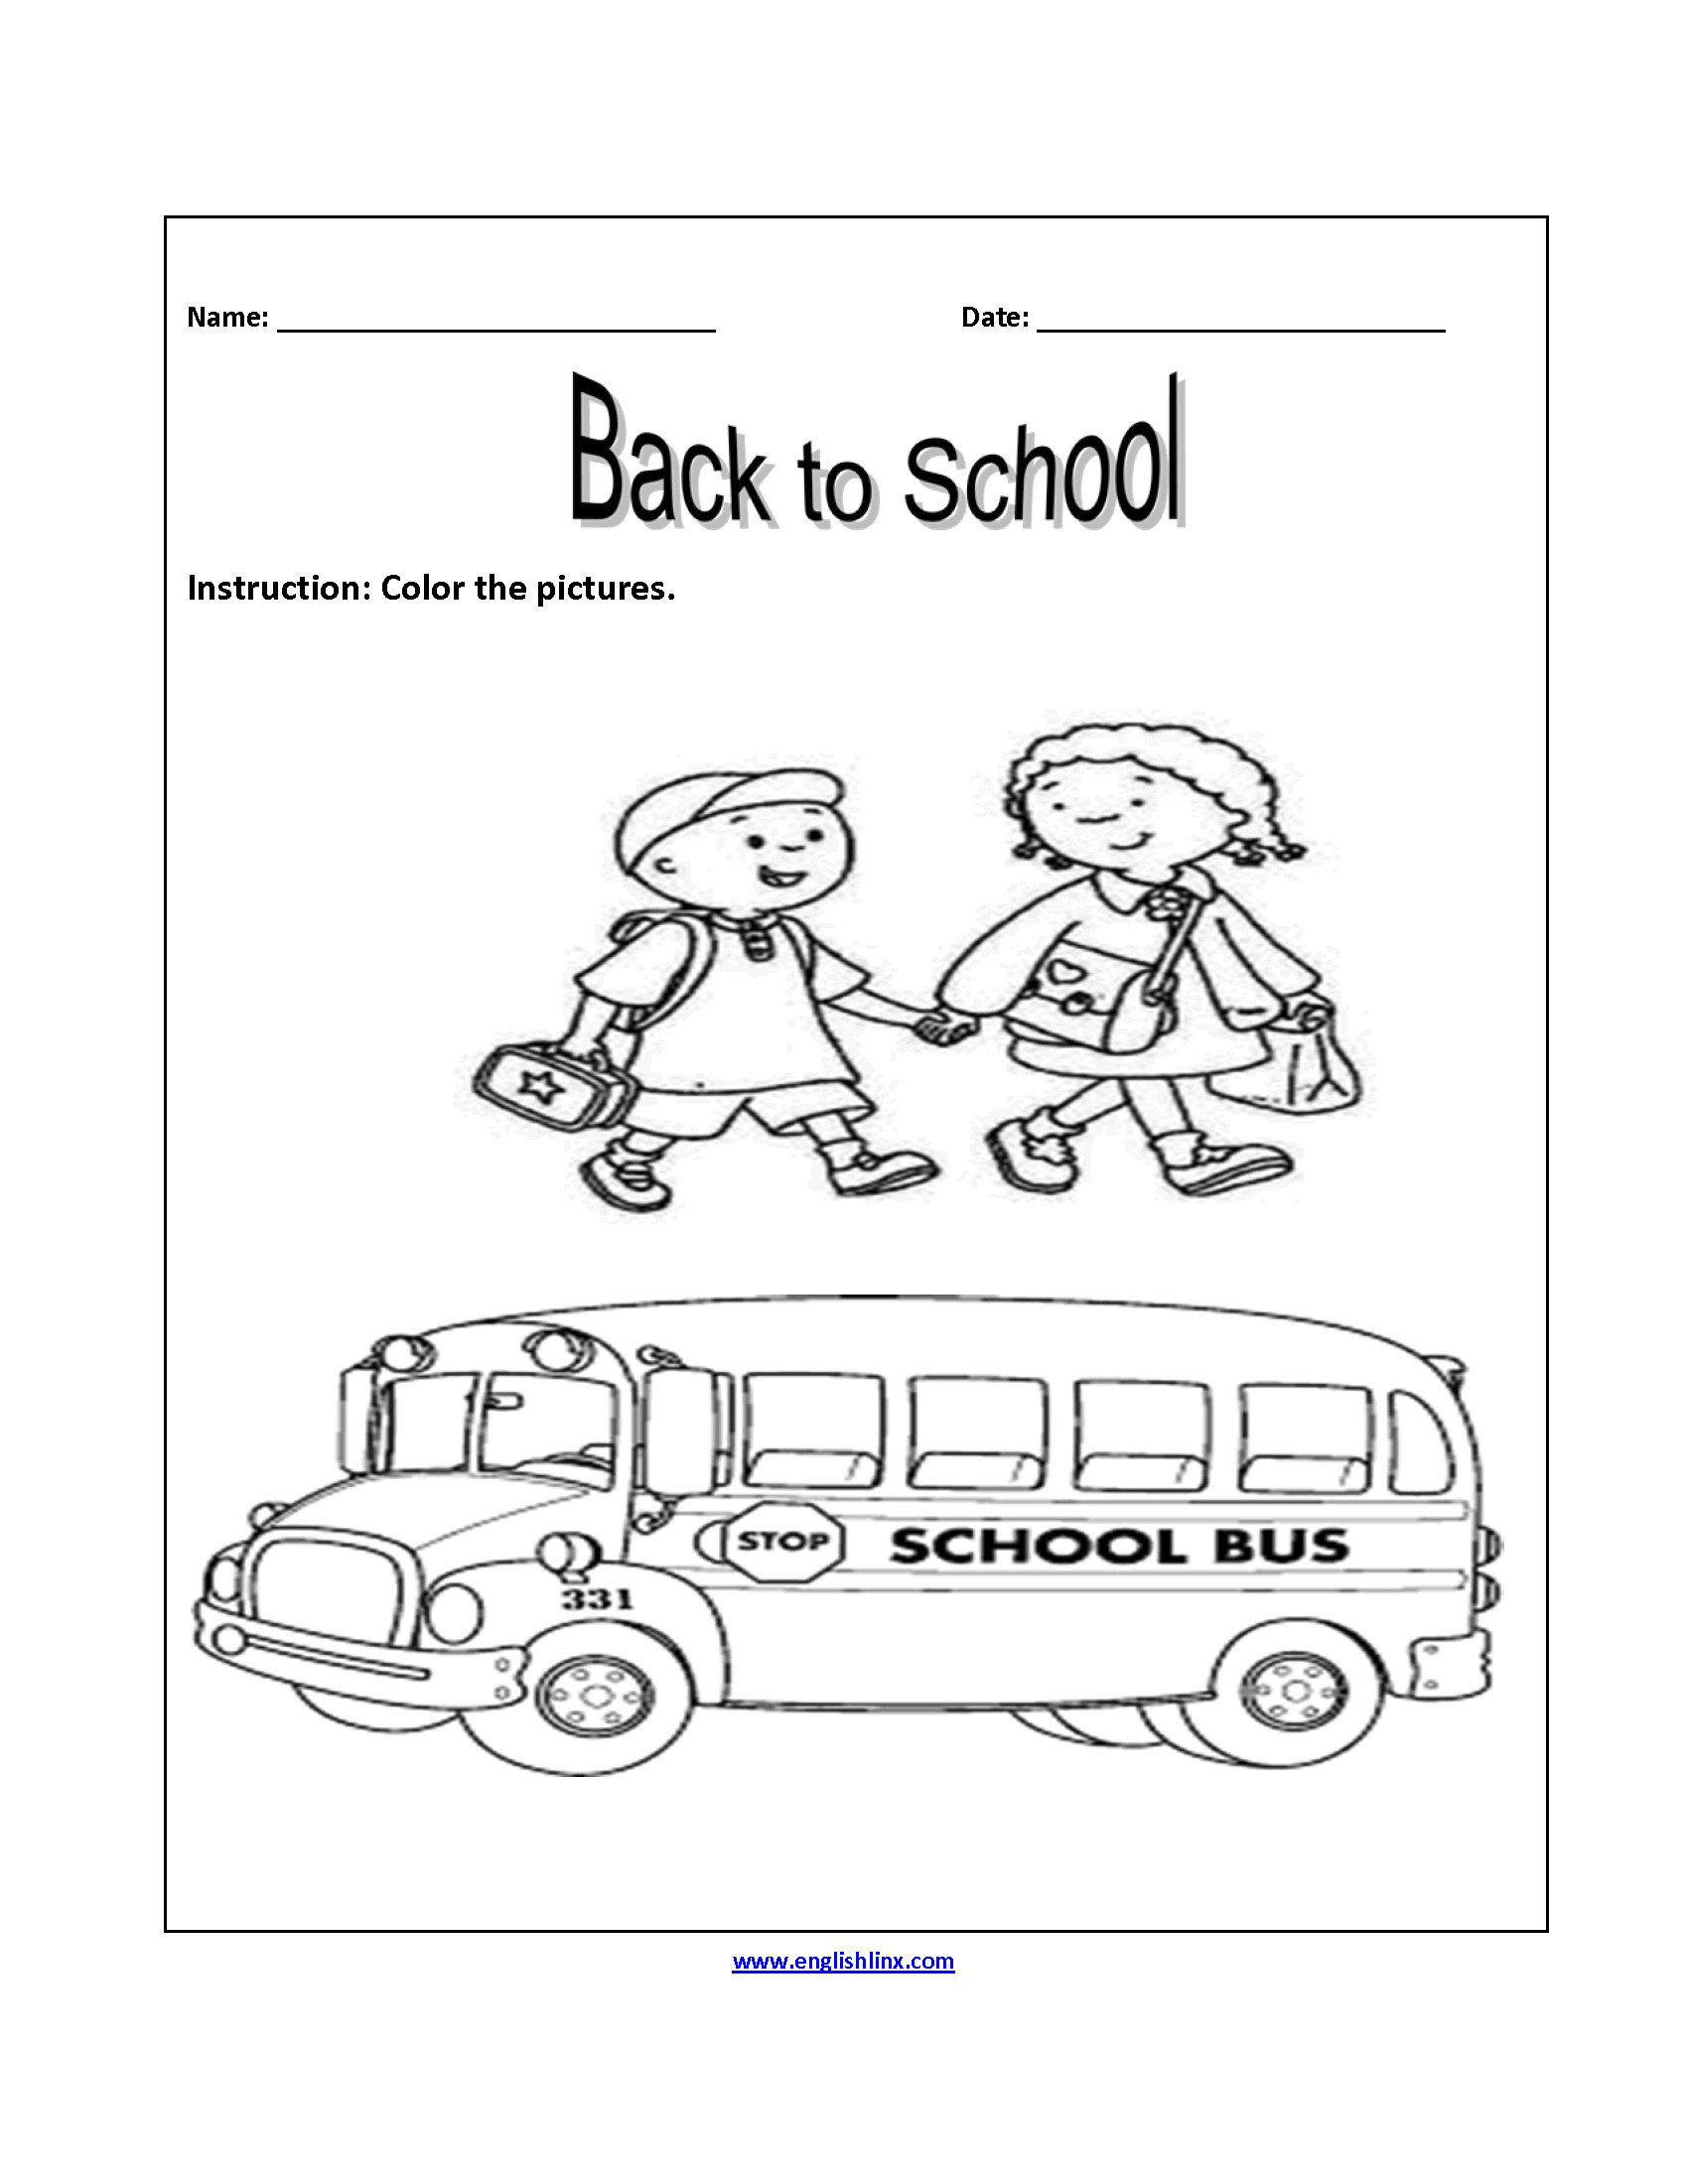 Back to School Worksheets Awesome Englishlinx